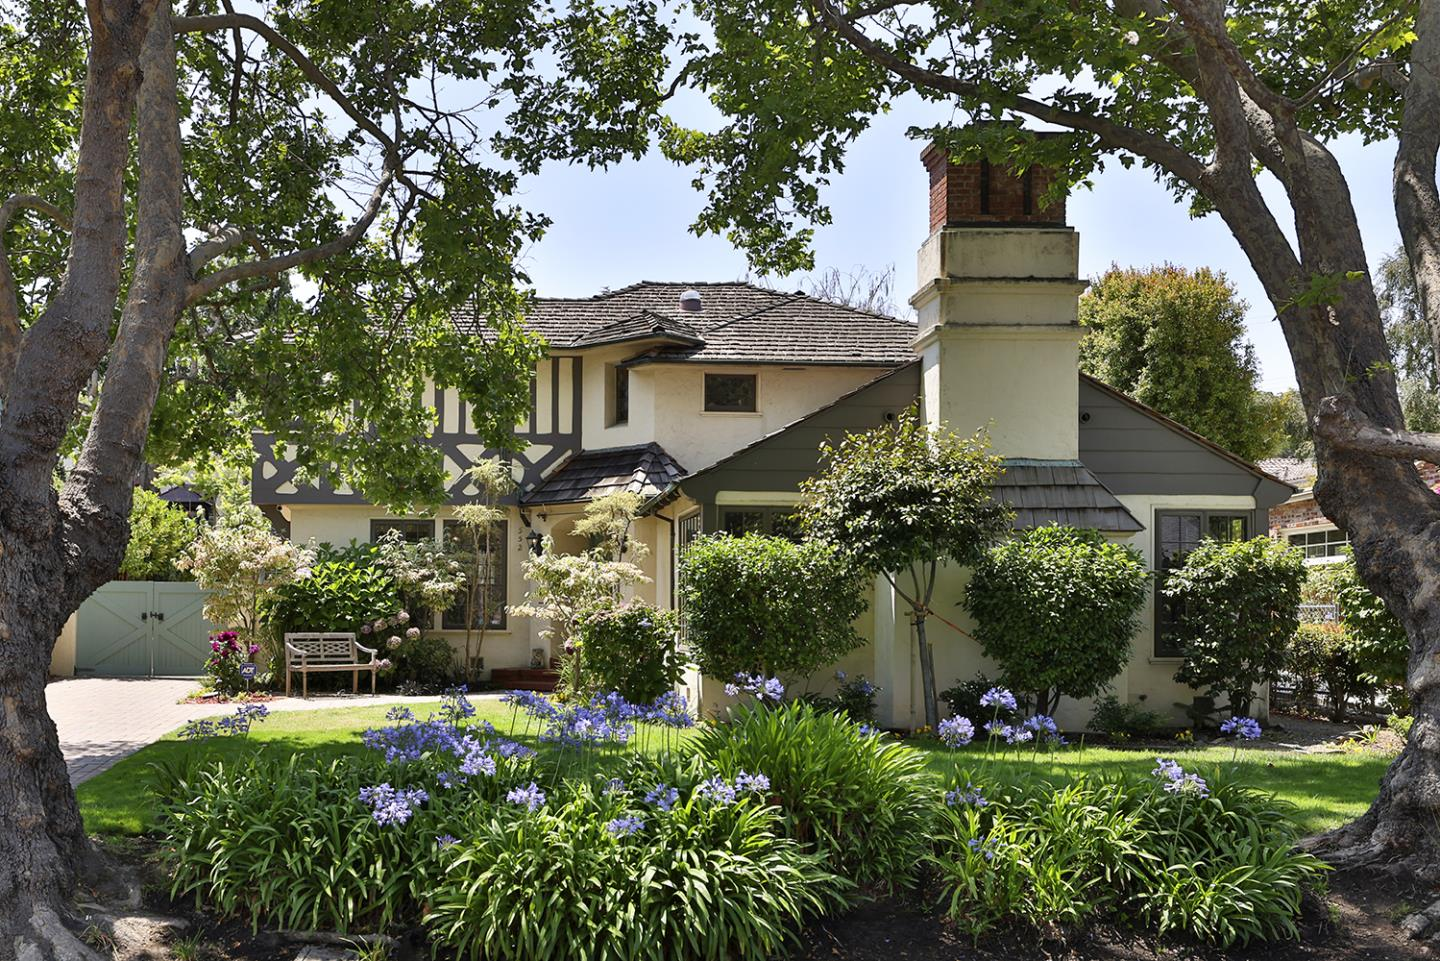 Come see, Freshly Painted Spacious Baywood 5 Bedroom and 3 bathrooms English Tudor updated to maintain original 1936 character. Beautiful hardwood floors throughout with gorgeous mahogany woodwork. Updated kitchen with new appliances. Fifth Bedroom used as family room. High efficiency furnace. Dual pane windows. French doors lead from dining room and breakfast room to beautiful patio and serene garden.  CedarWorks Playground right in your backyard.  Newly renovated studio, designed as game or artist play room.